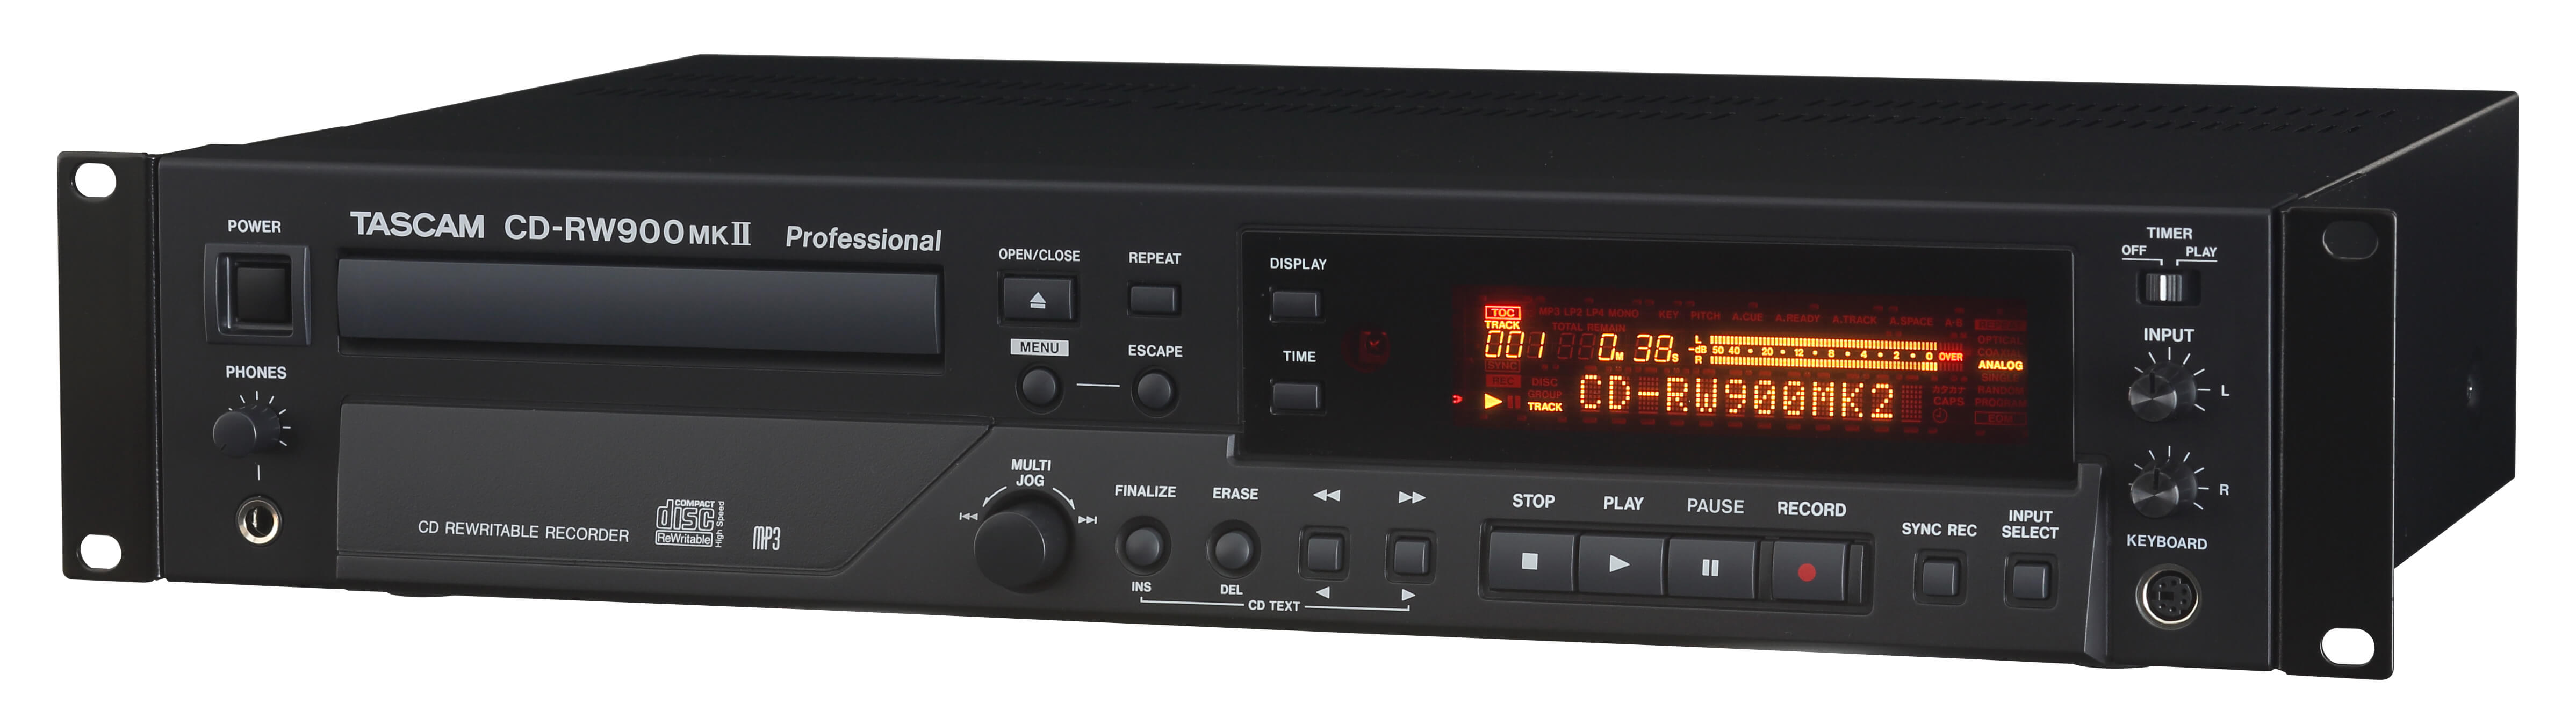 Tascam Cd Rw900mkii Professional Cd Recorder Player